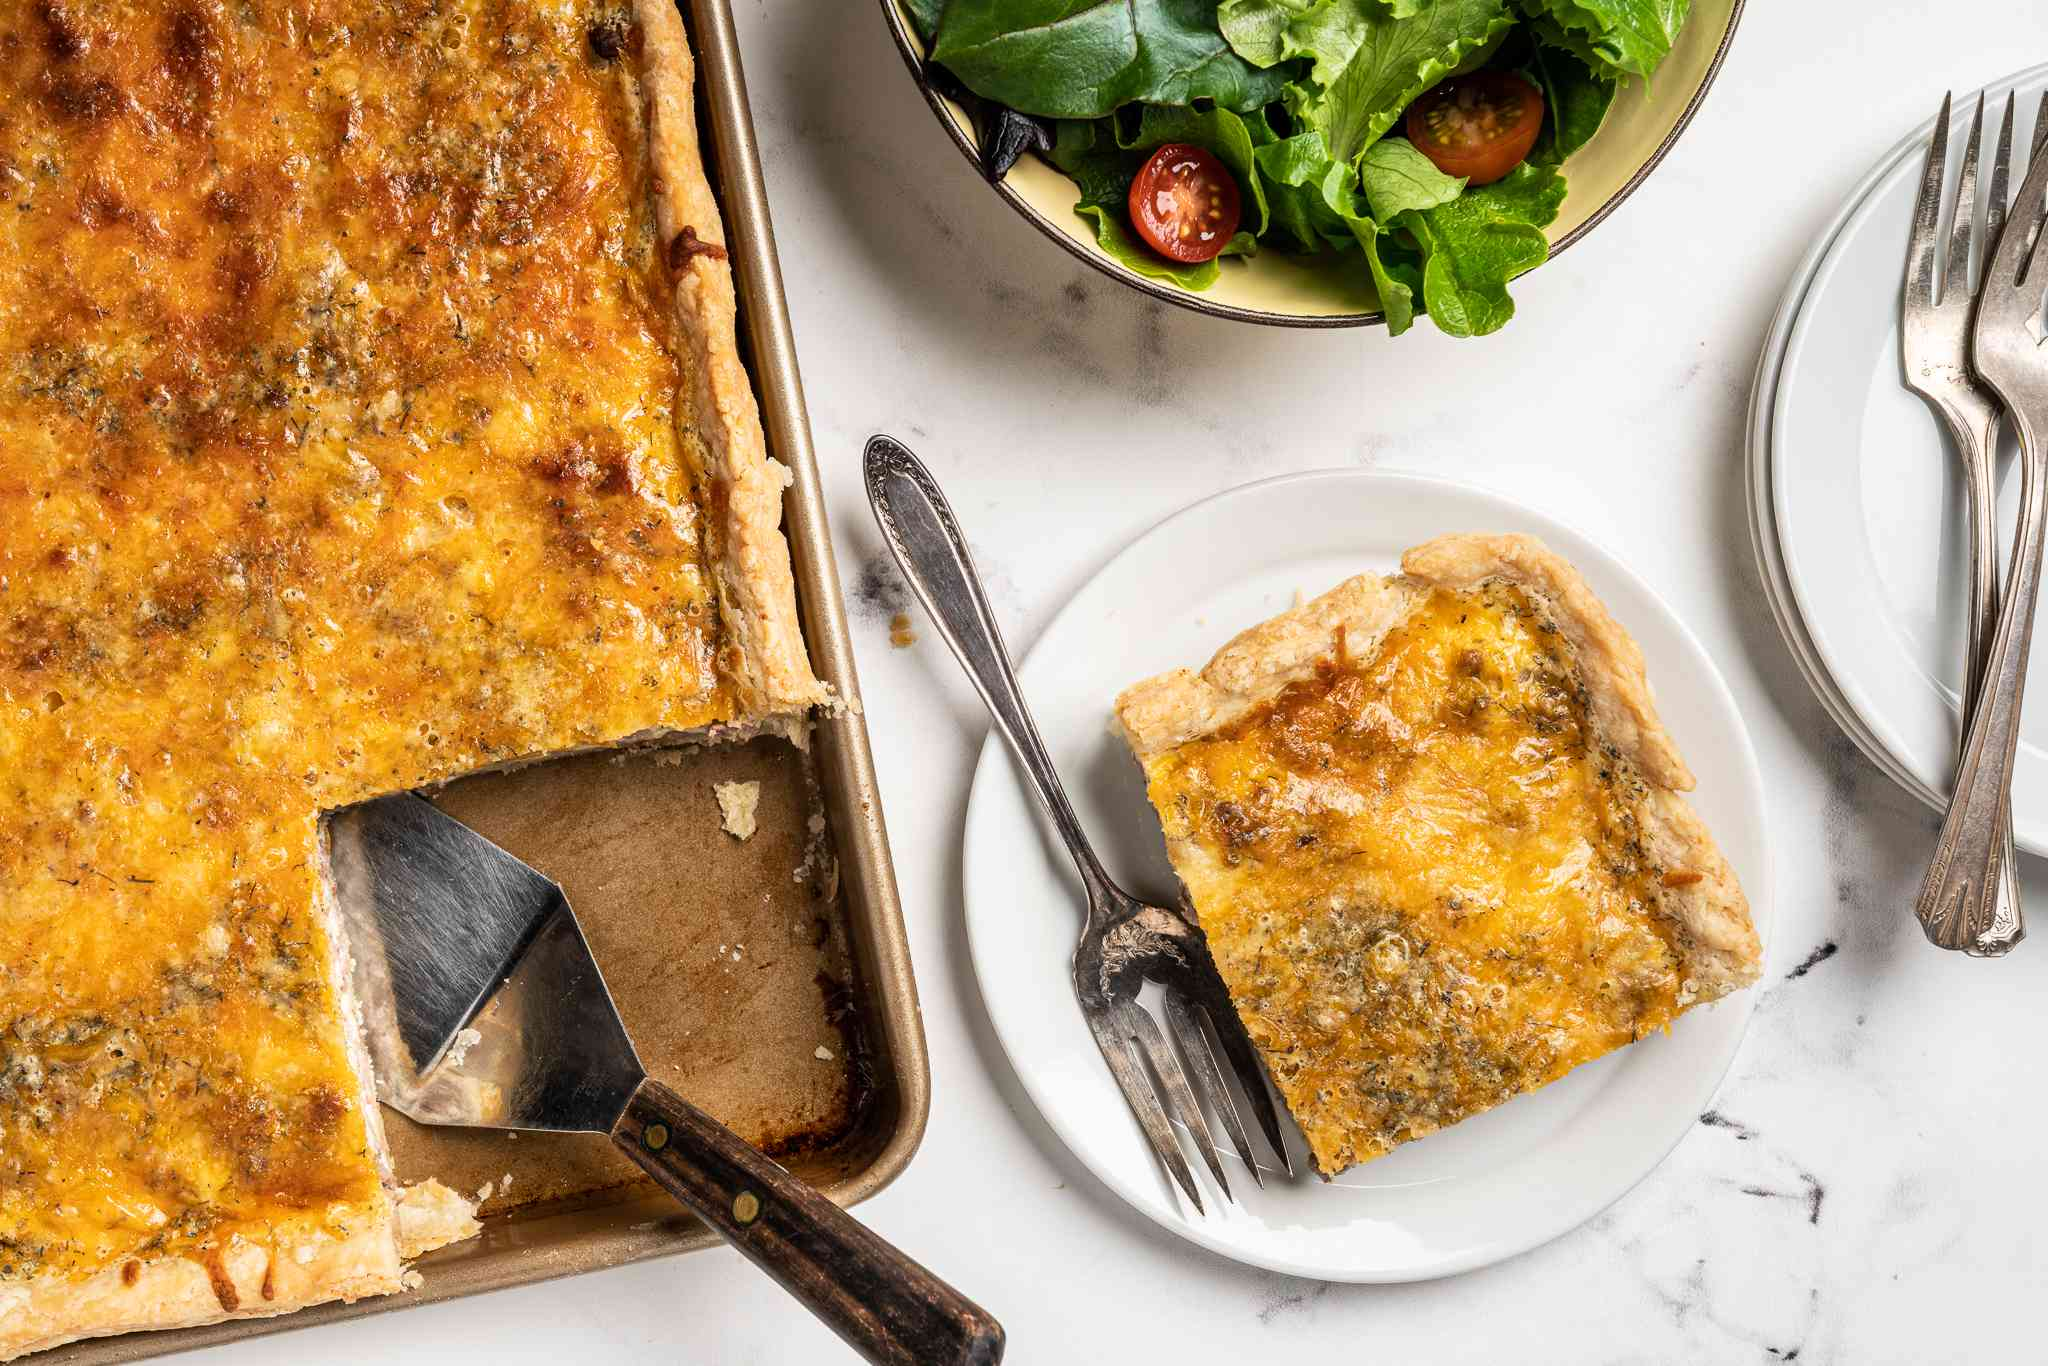 Beef Cheese Pan Quiche